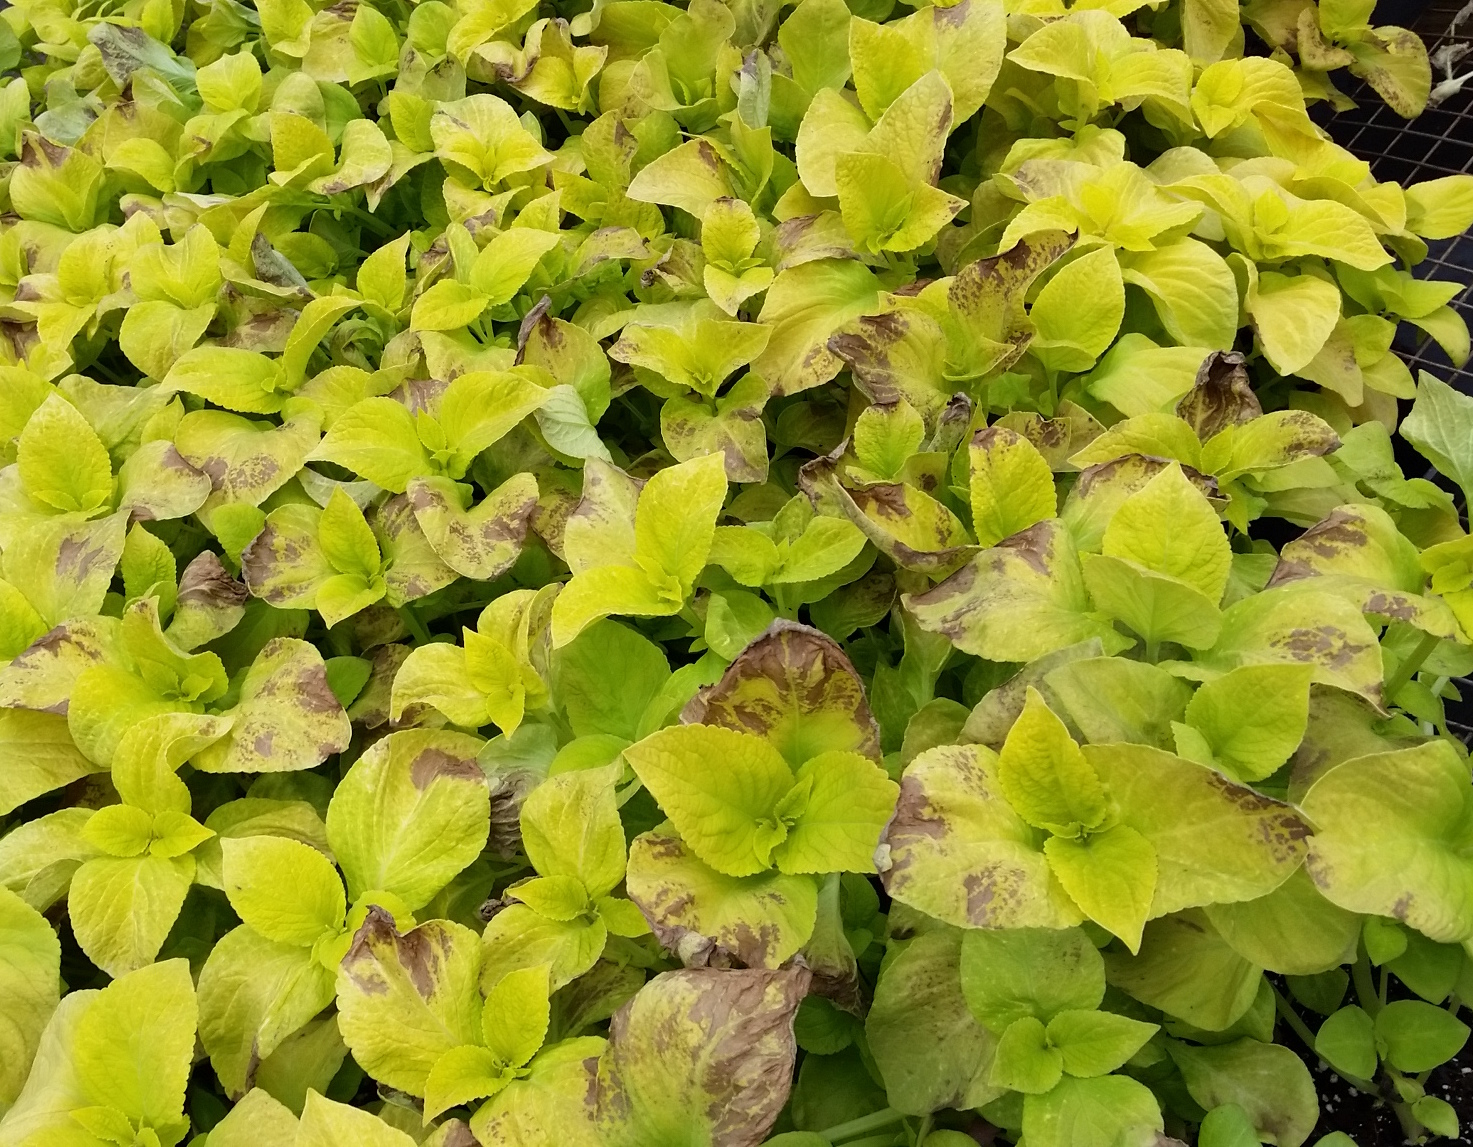 Symptoms of coleus downy mildew on leaves, NCSU Plant Disease and Insect Clinic